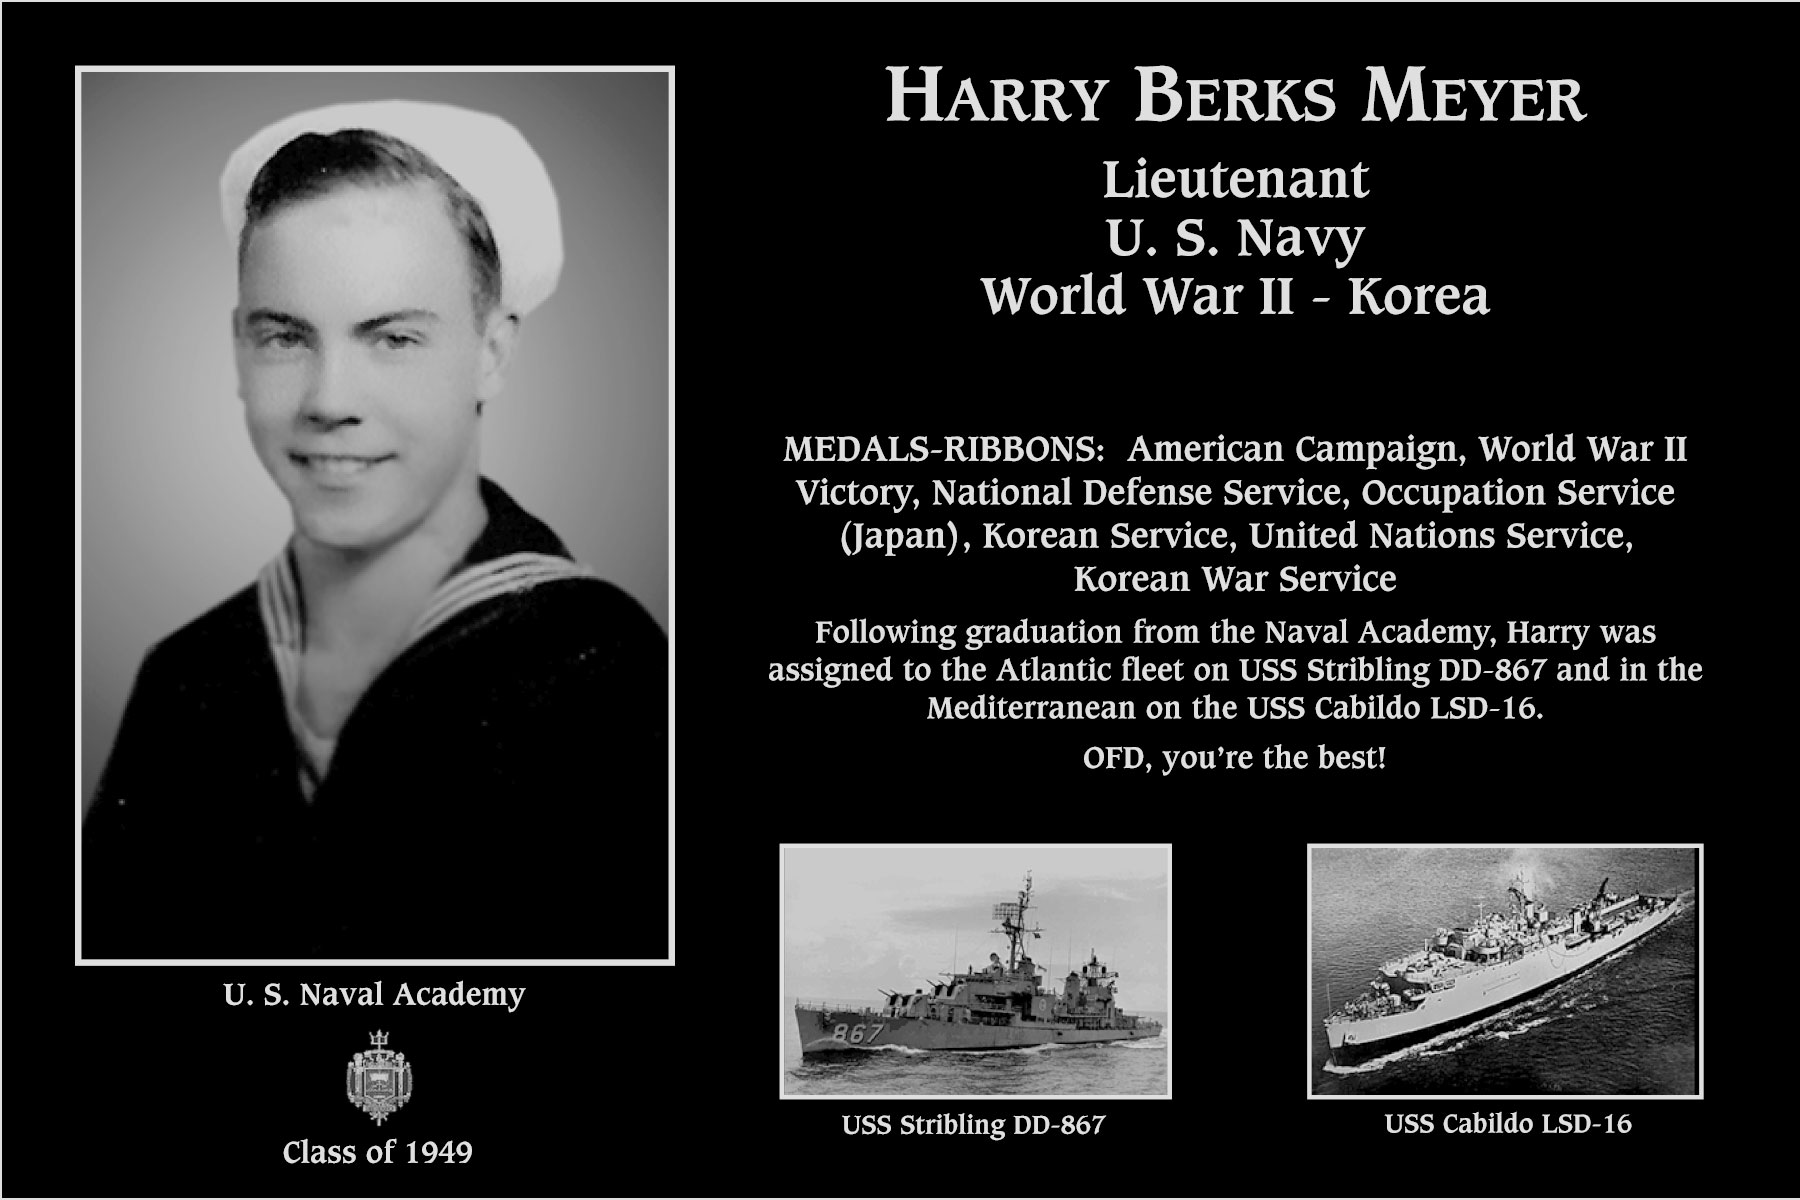 Harry Berks Meyer